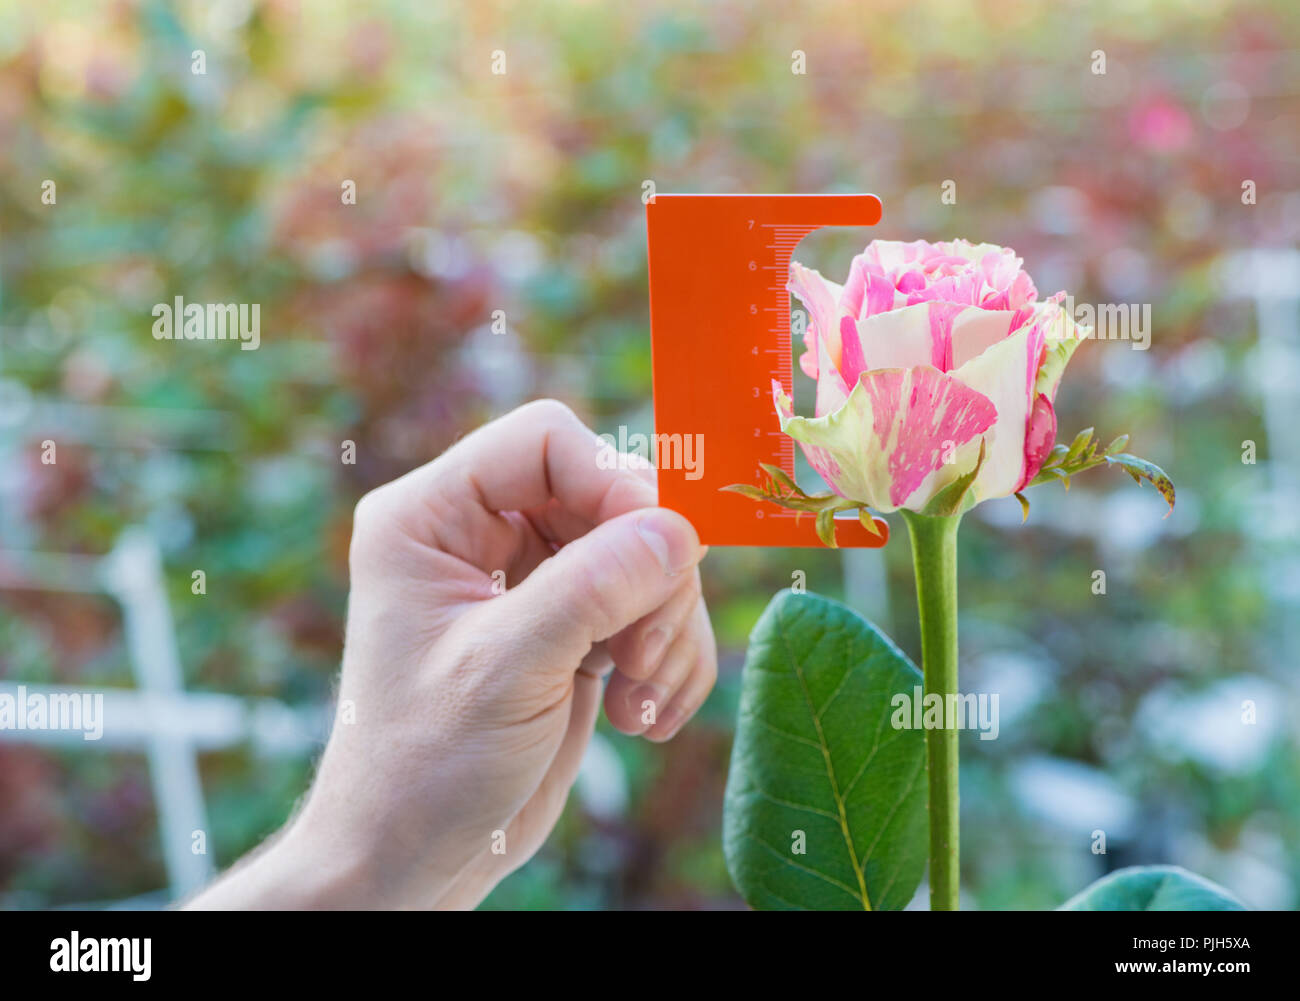 measurement with a ruler of a bud of a rose flower on blurred background - Stock Image